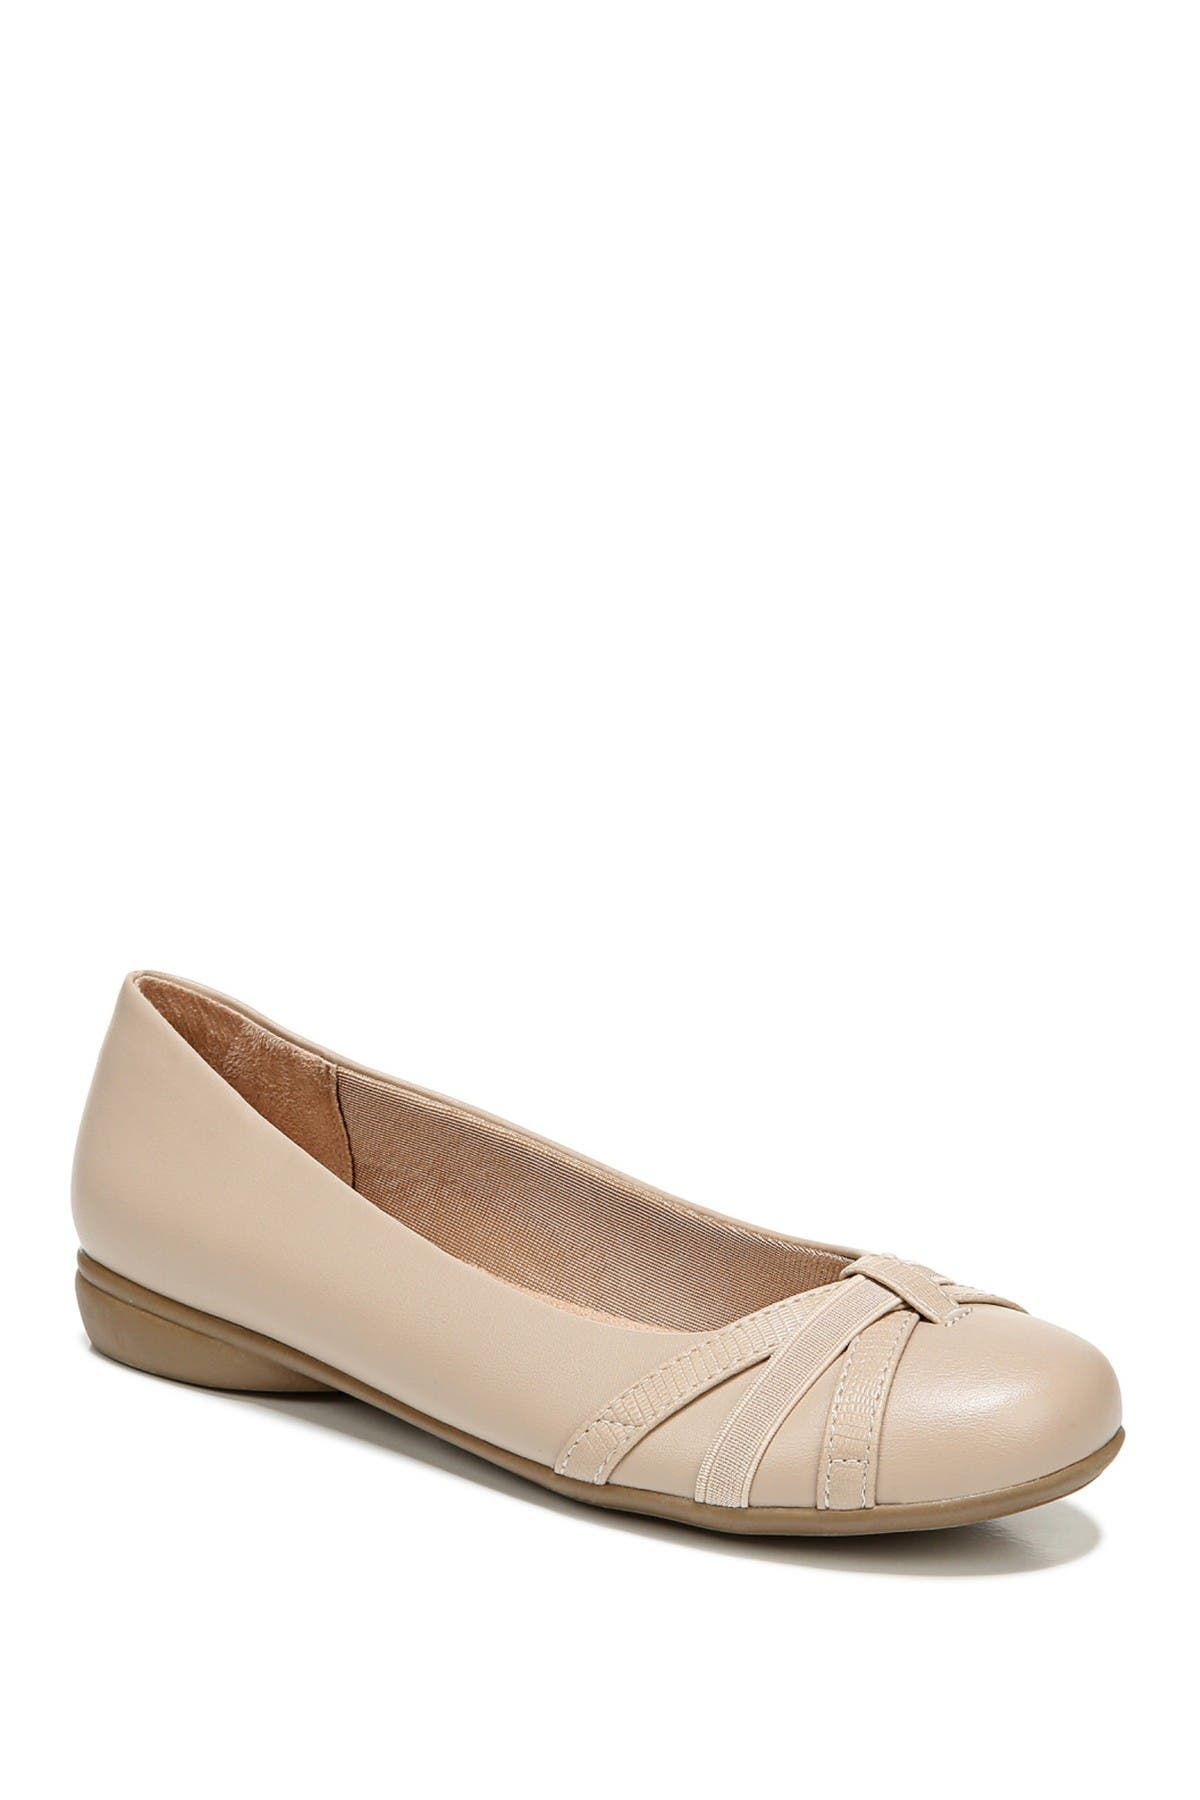 Lifestride Abigail Flat In Taupe